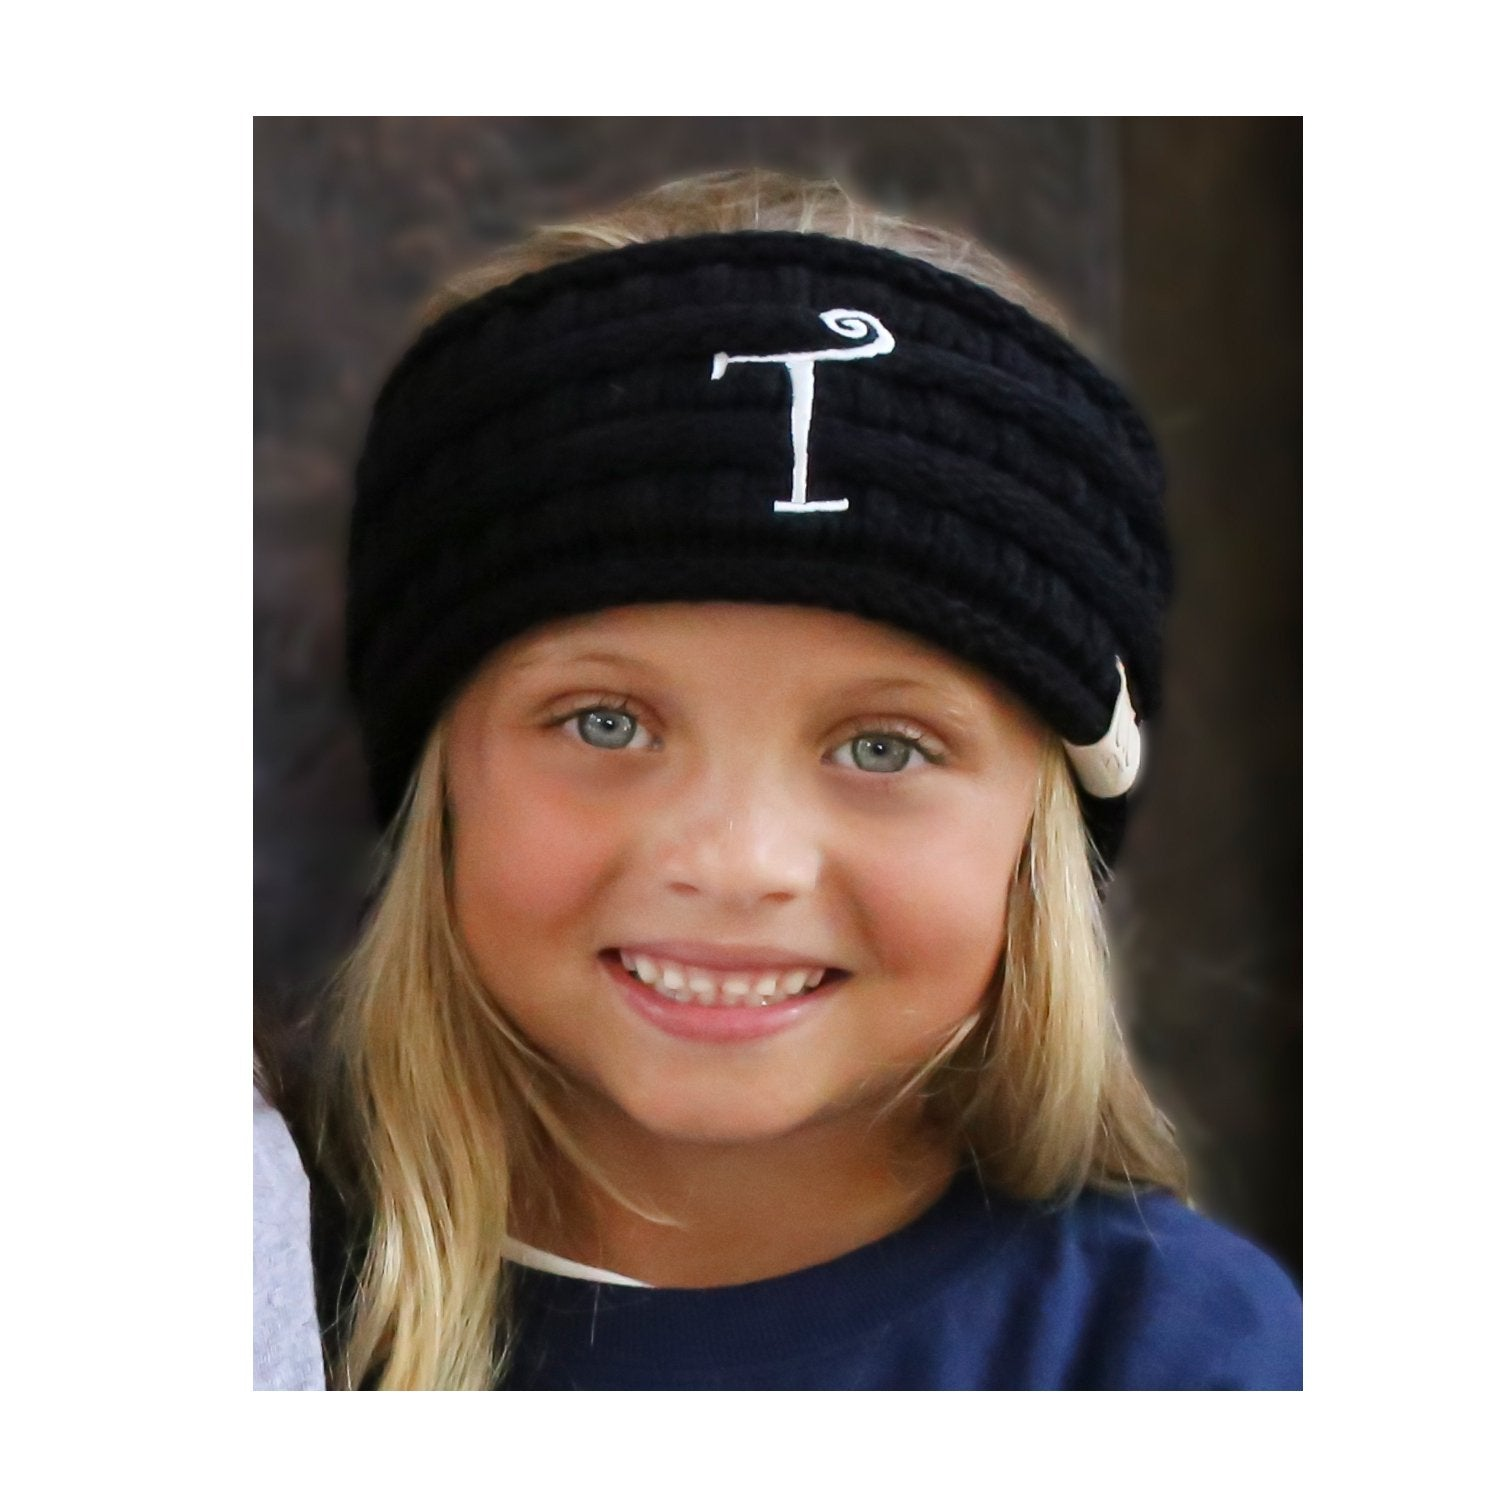 BJ-Kids-HW-1 Initial Headwrap Black